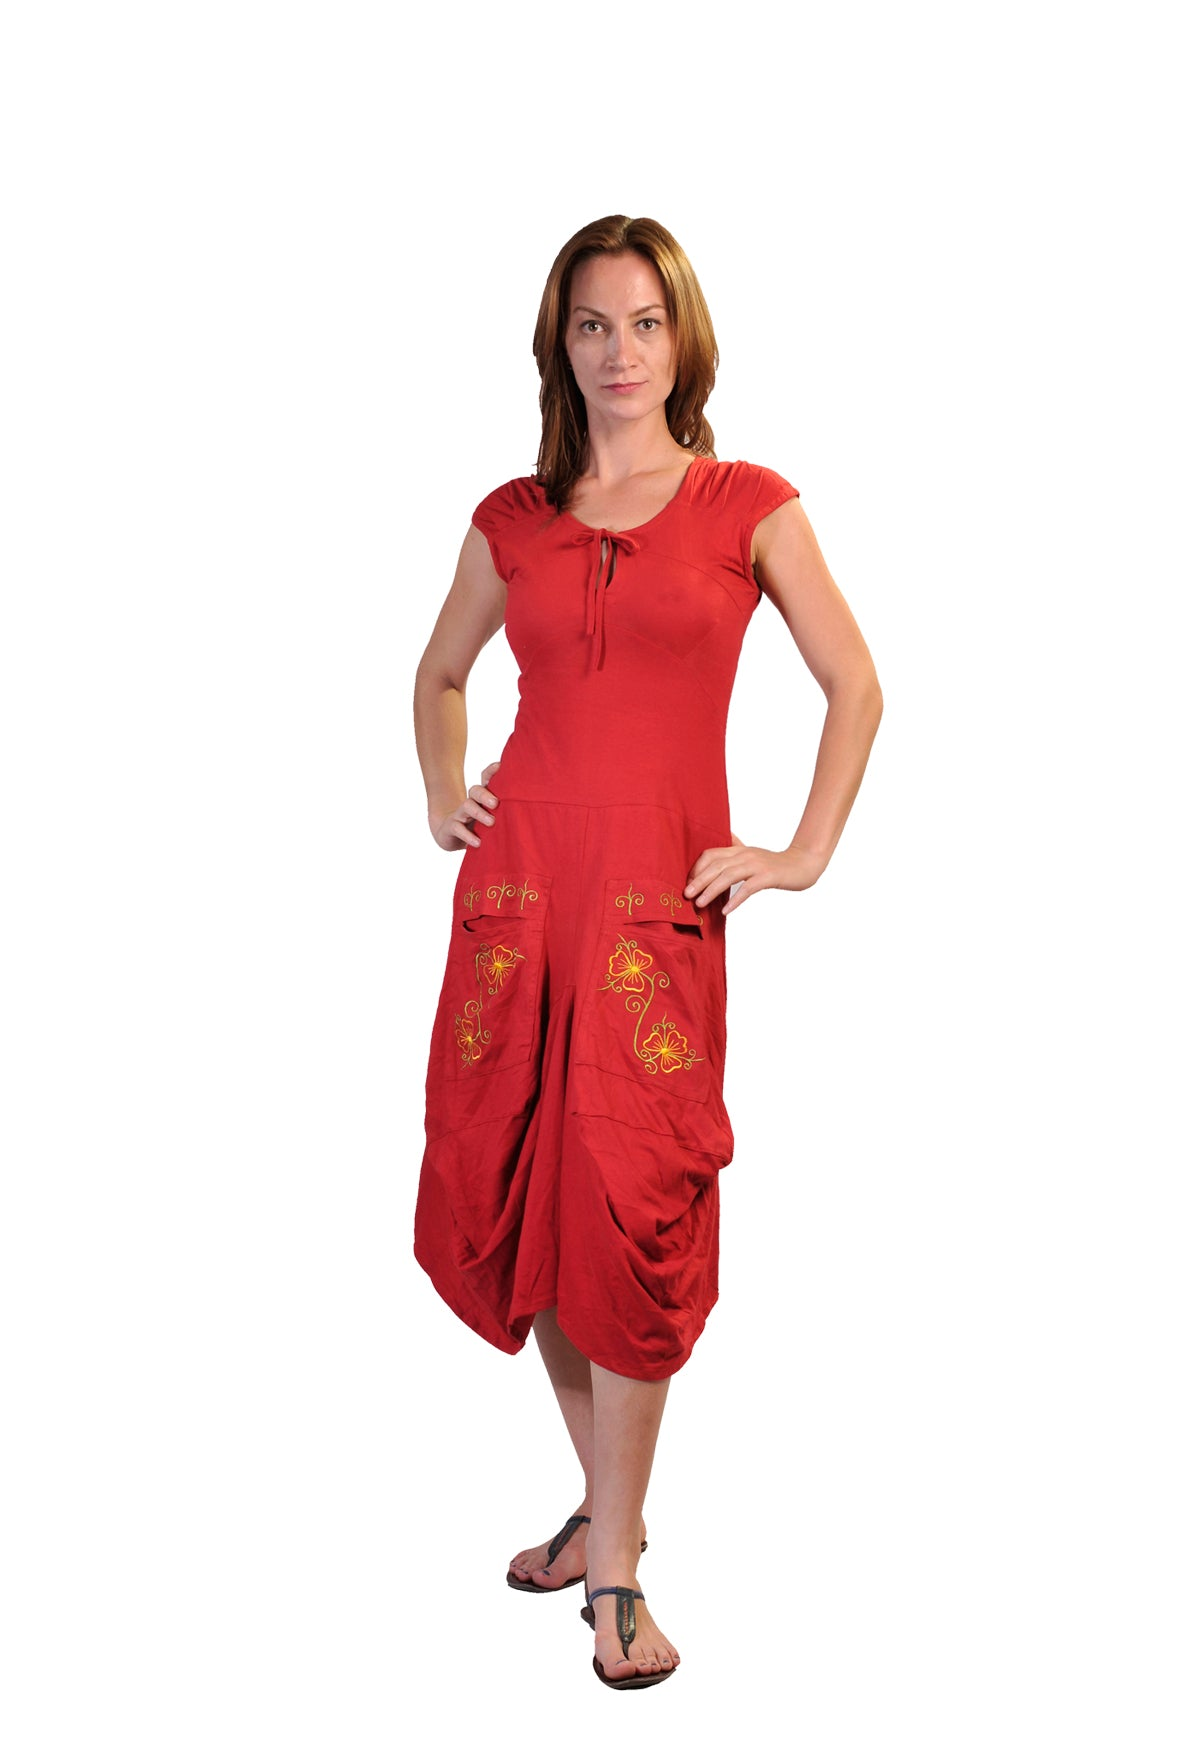 Ladies Short Sleeved Calf Length Dress With Flower Embroidery Printed On Pockets- LG-BFJ-10 - Craze Trade Limited